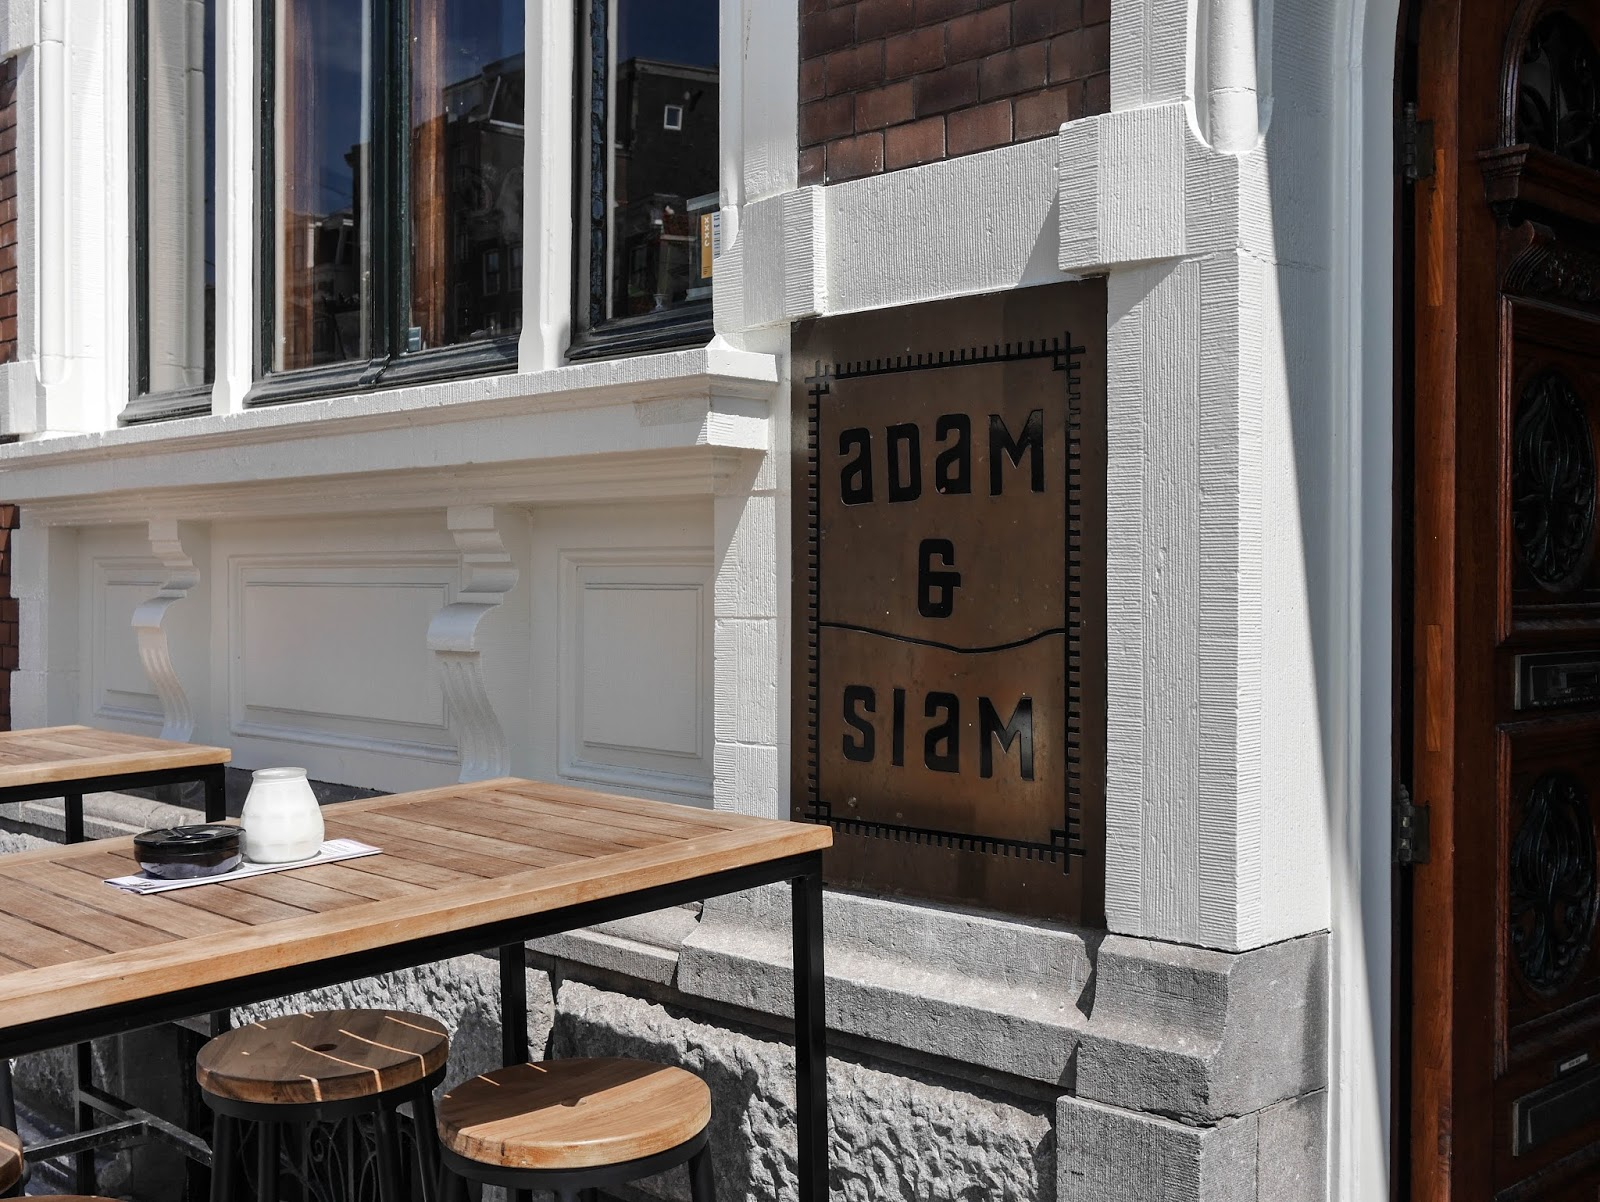 restaurant amdam&siam amsterdam parisgrenoble